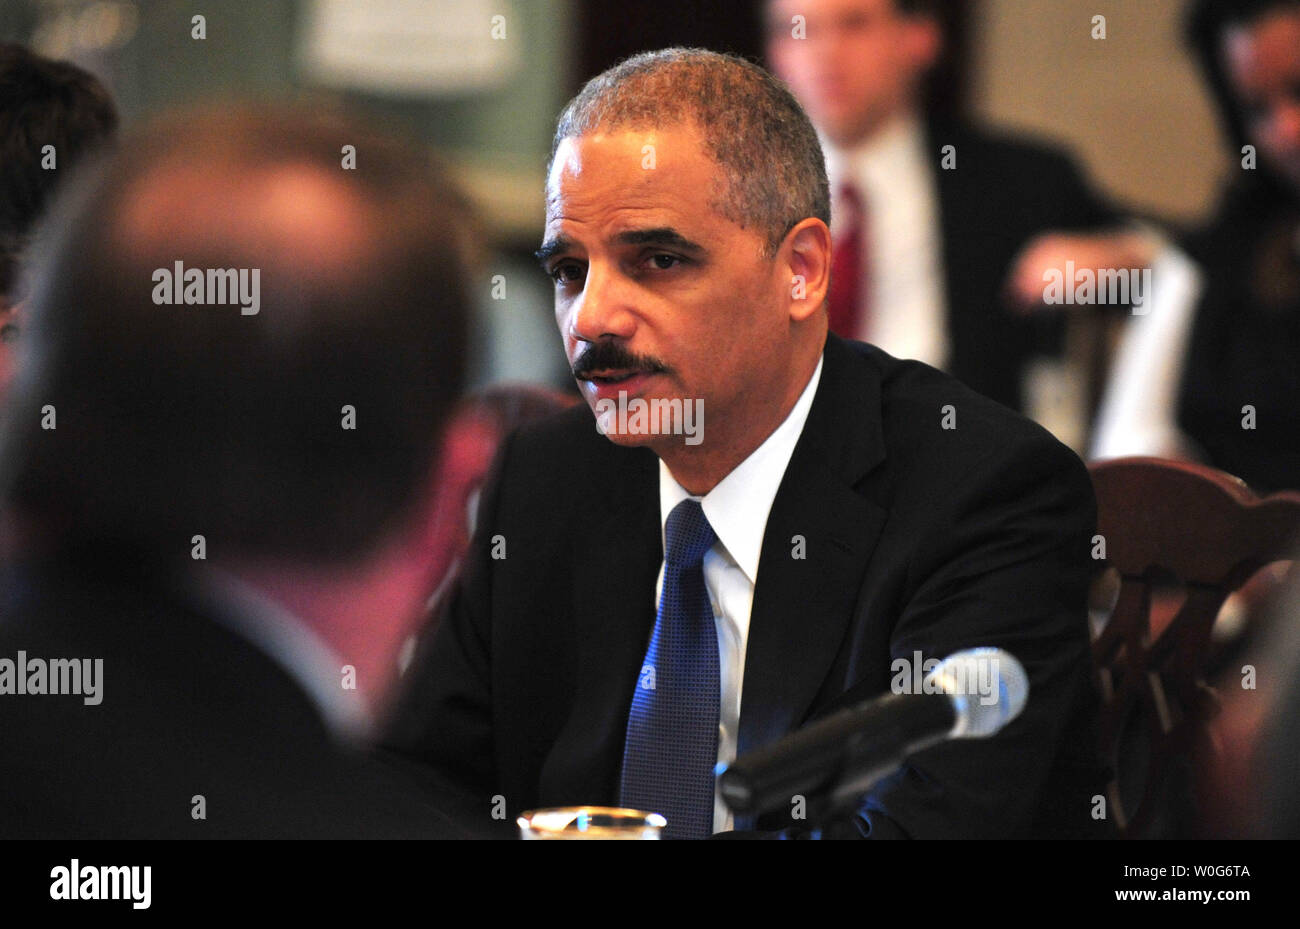 Attorney General Eric Holder speaks during the State Department's annual meeting of the President's Interagency Task Force to Monitor and Combat Trafficking in Persons, at the State Department in Washington on February 1, 2011. Stock Photo